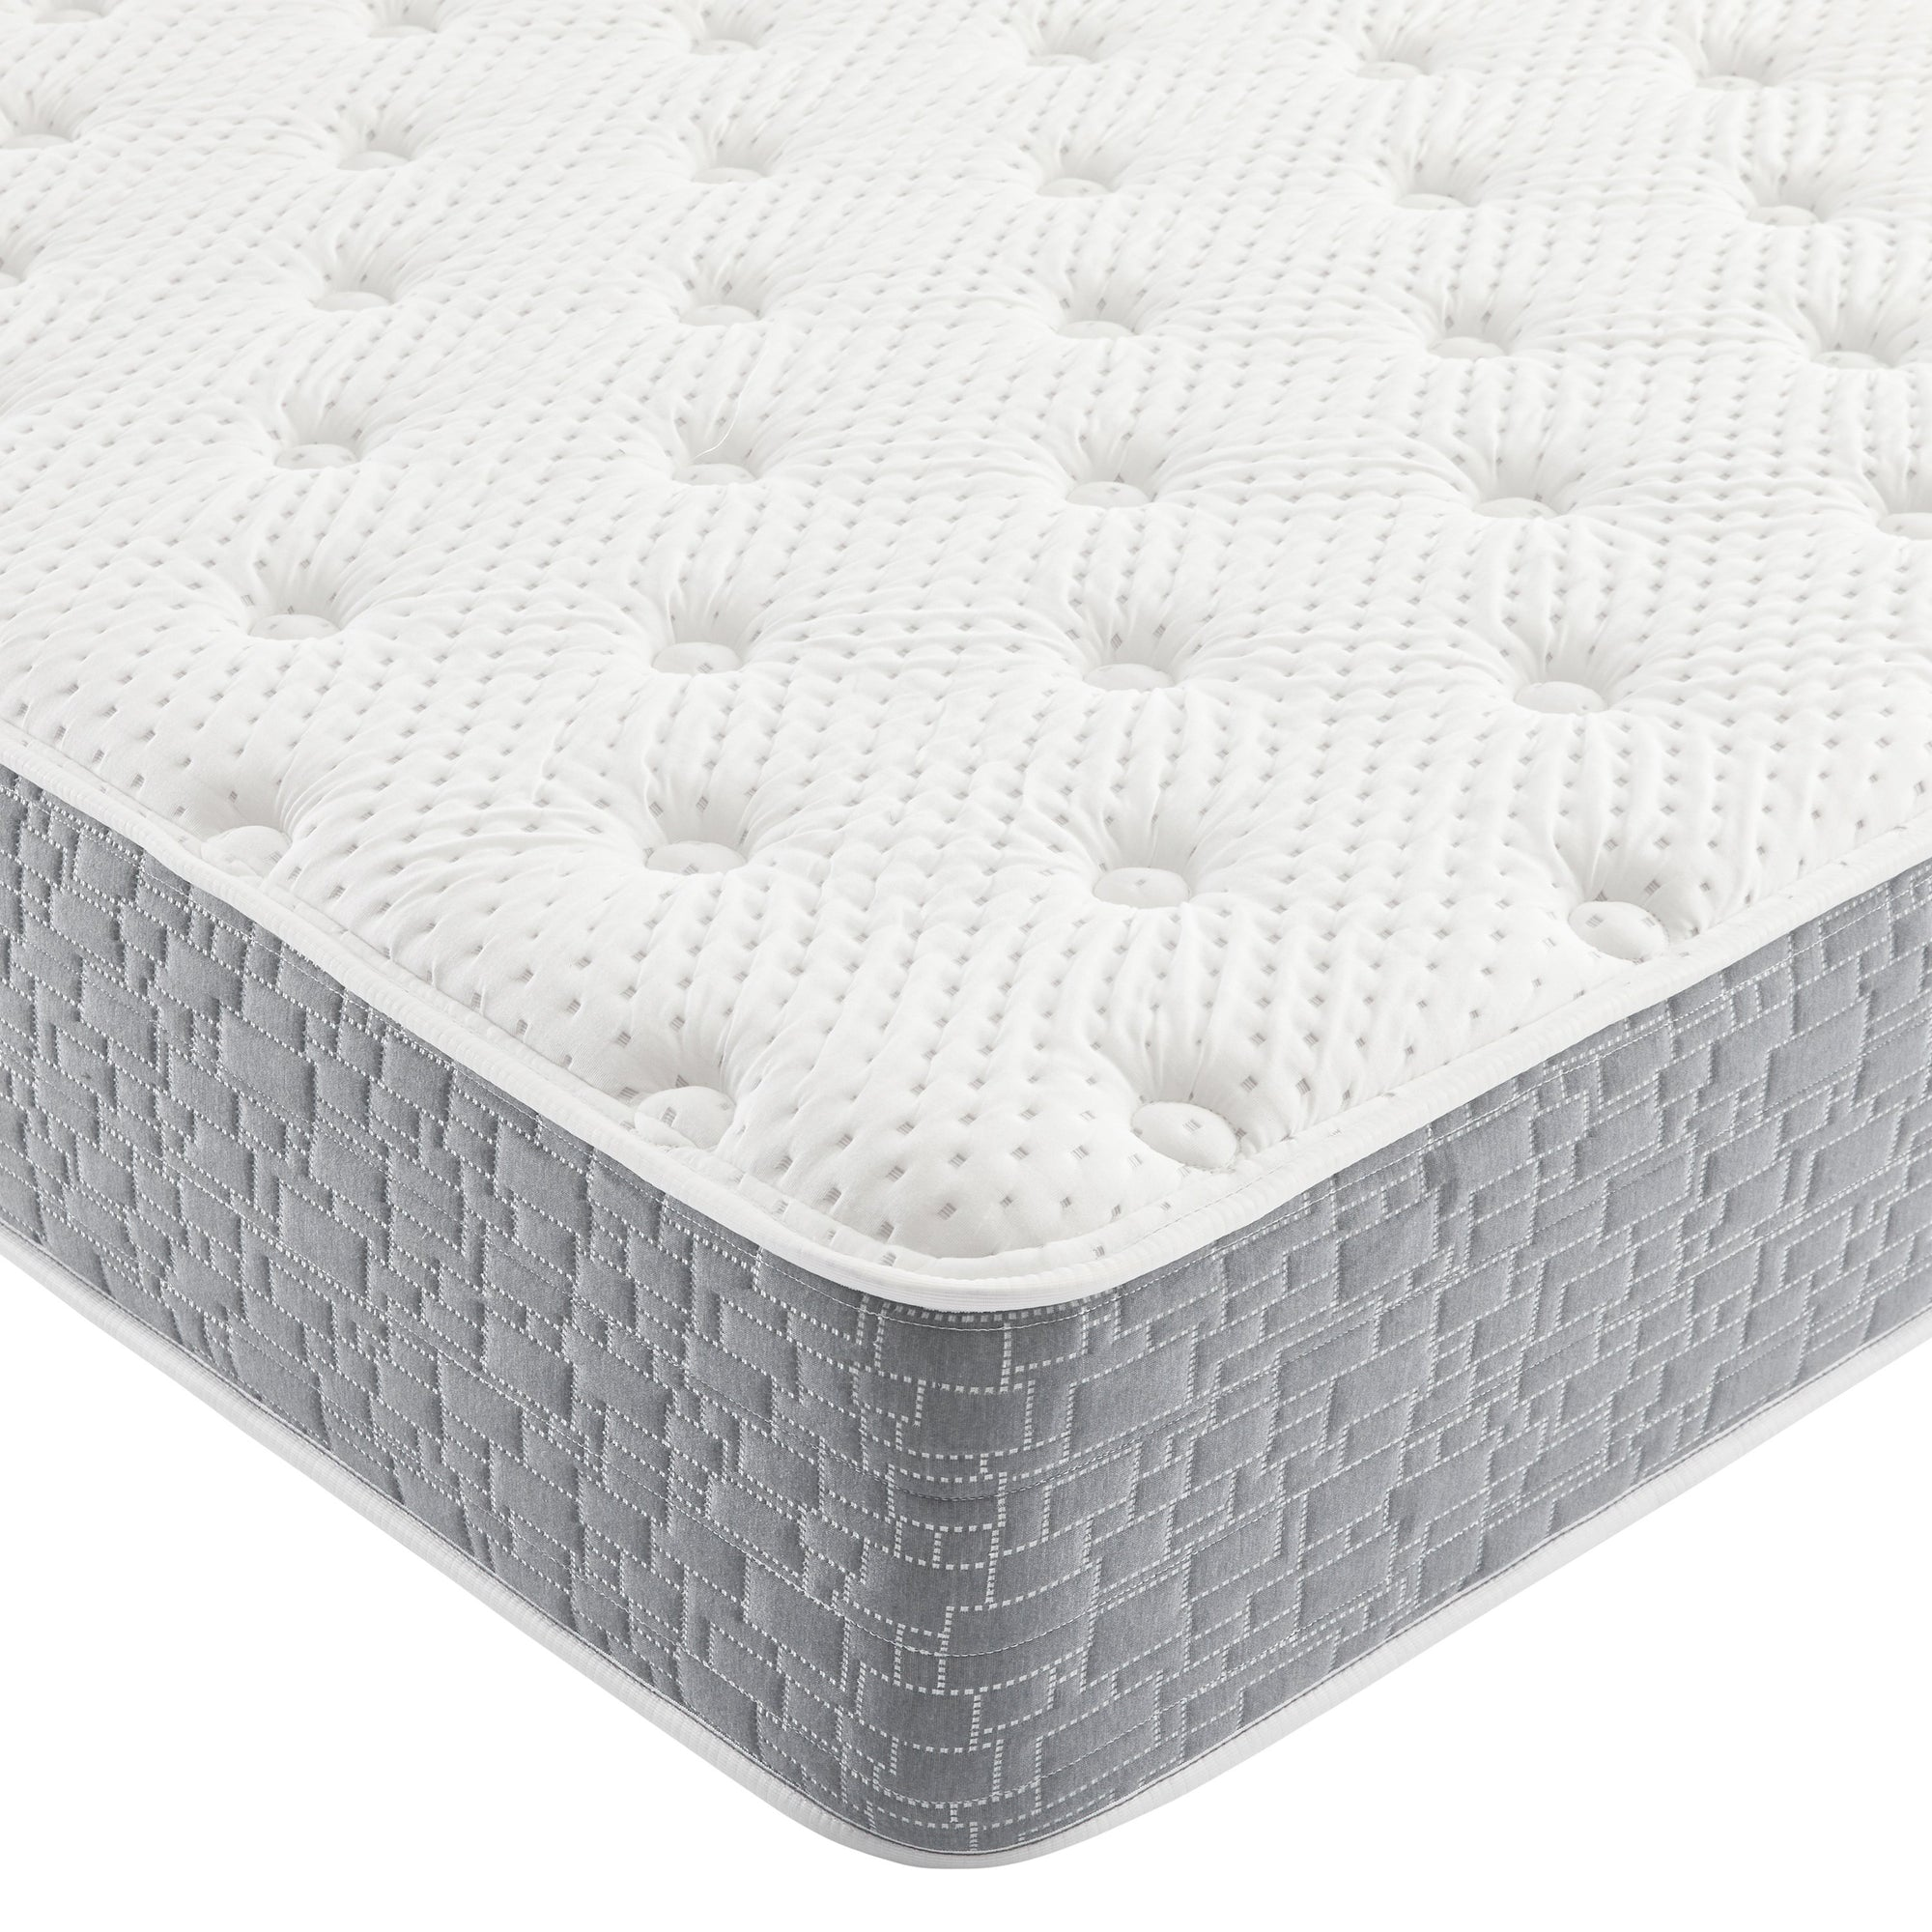 "13"" Hybrid Gel Memory Foam Mattress"